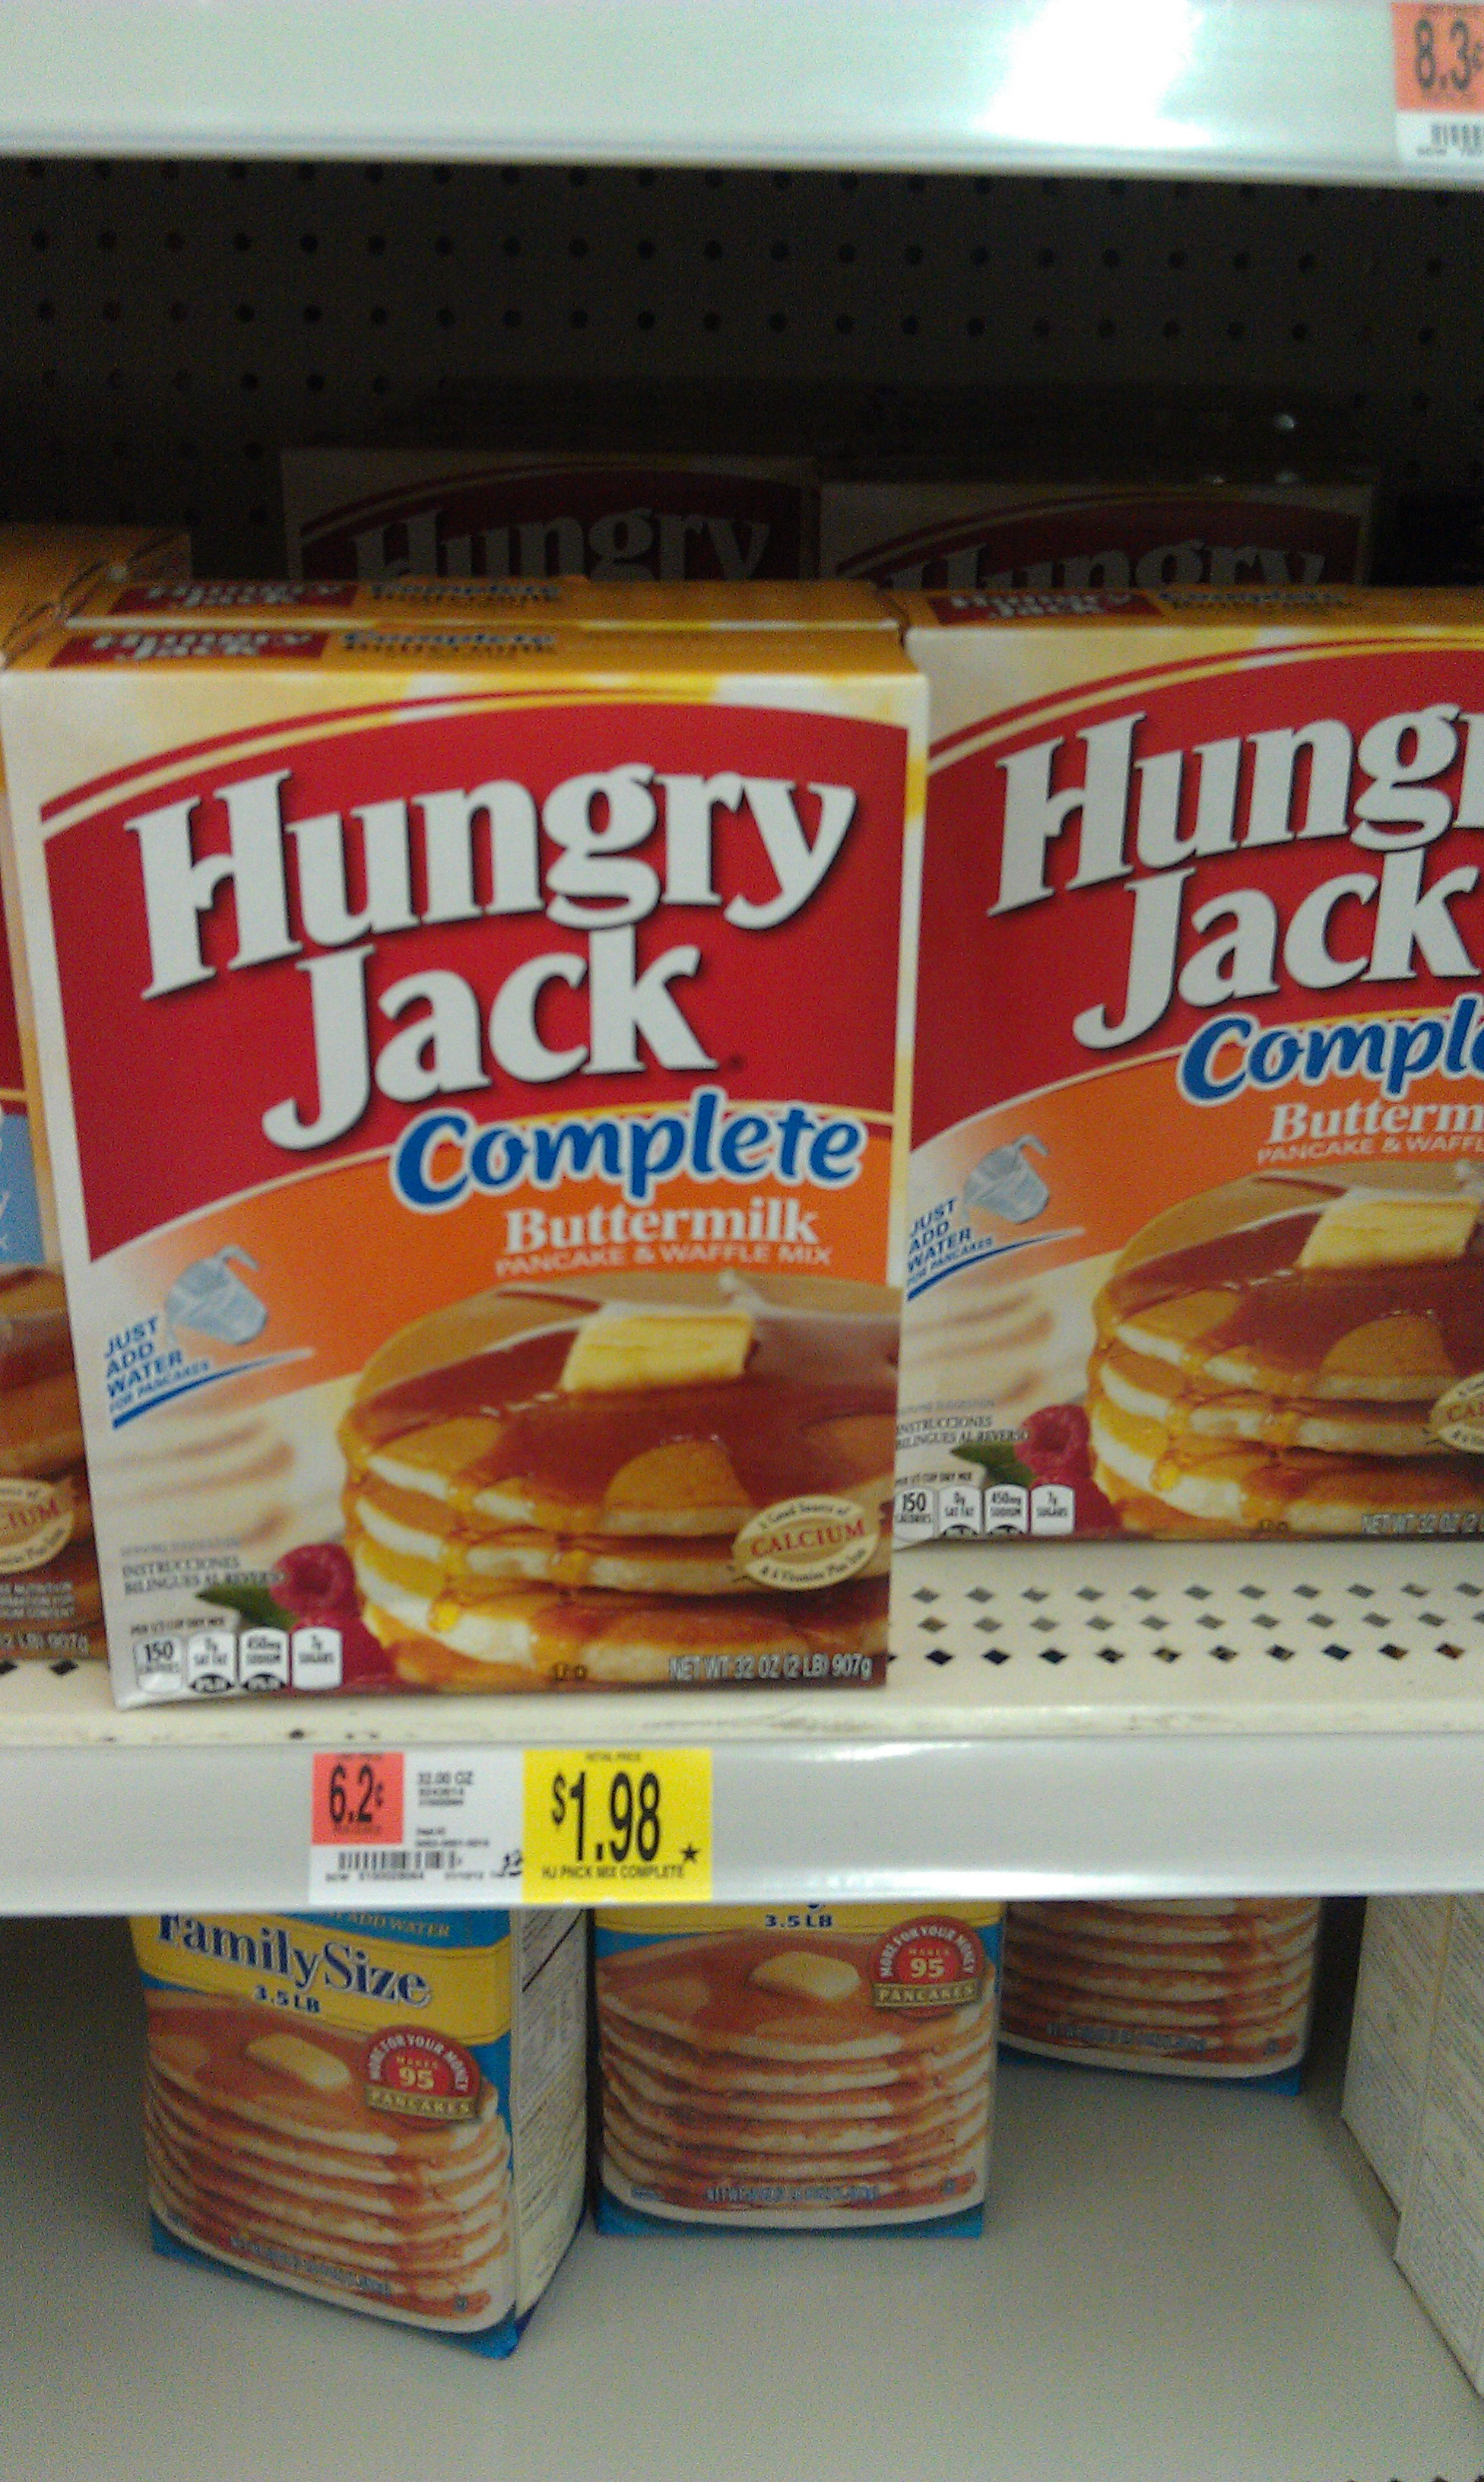 Hungry jack breakfast for christmas morning well here is a great deal at walmart on some hungry jack pancake mix and syrup i love how easy these mixes are to use ccuart Gallery